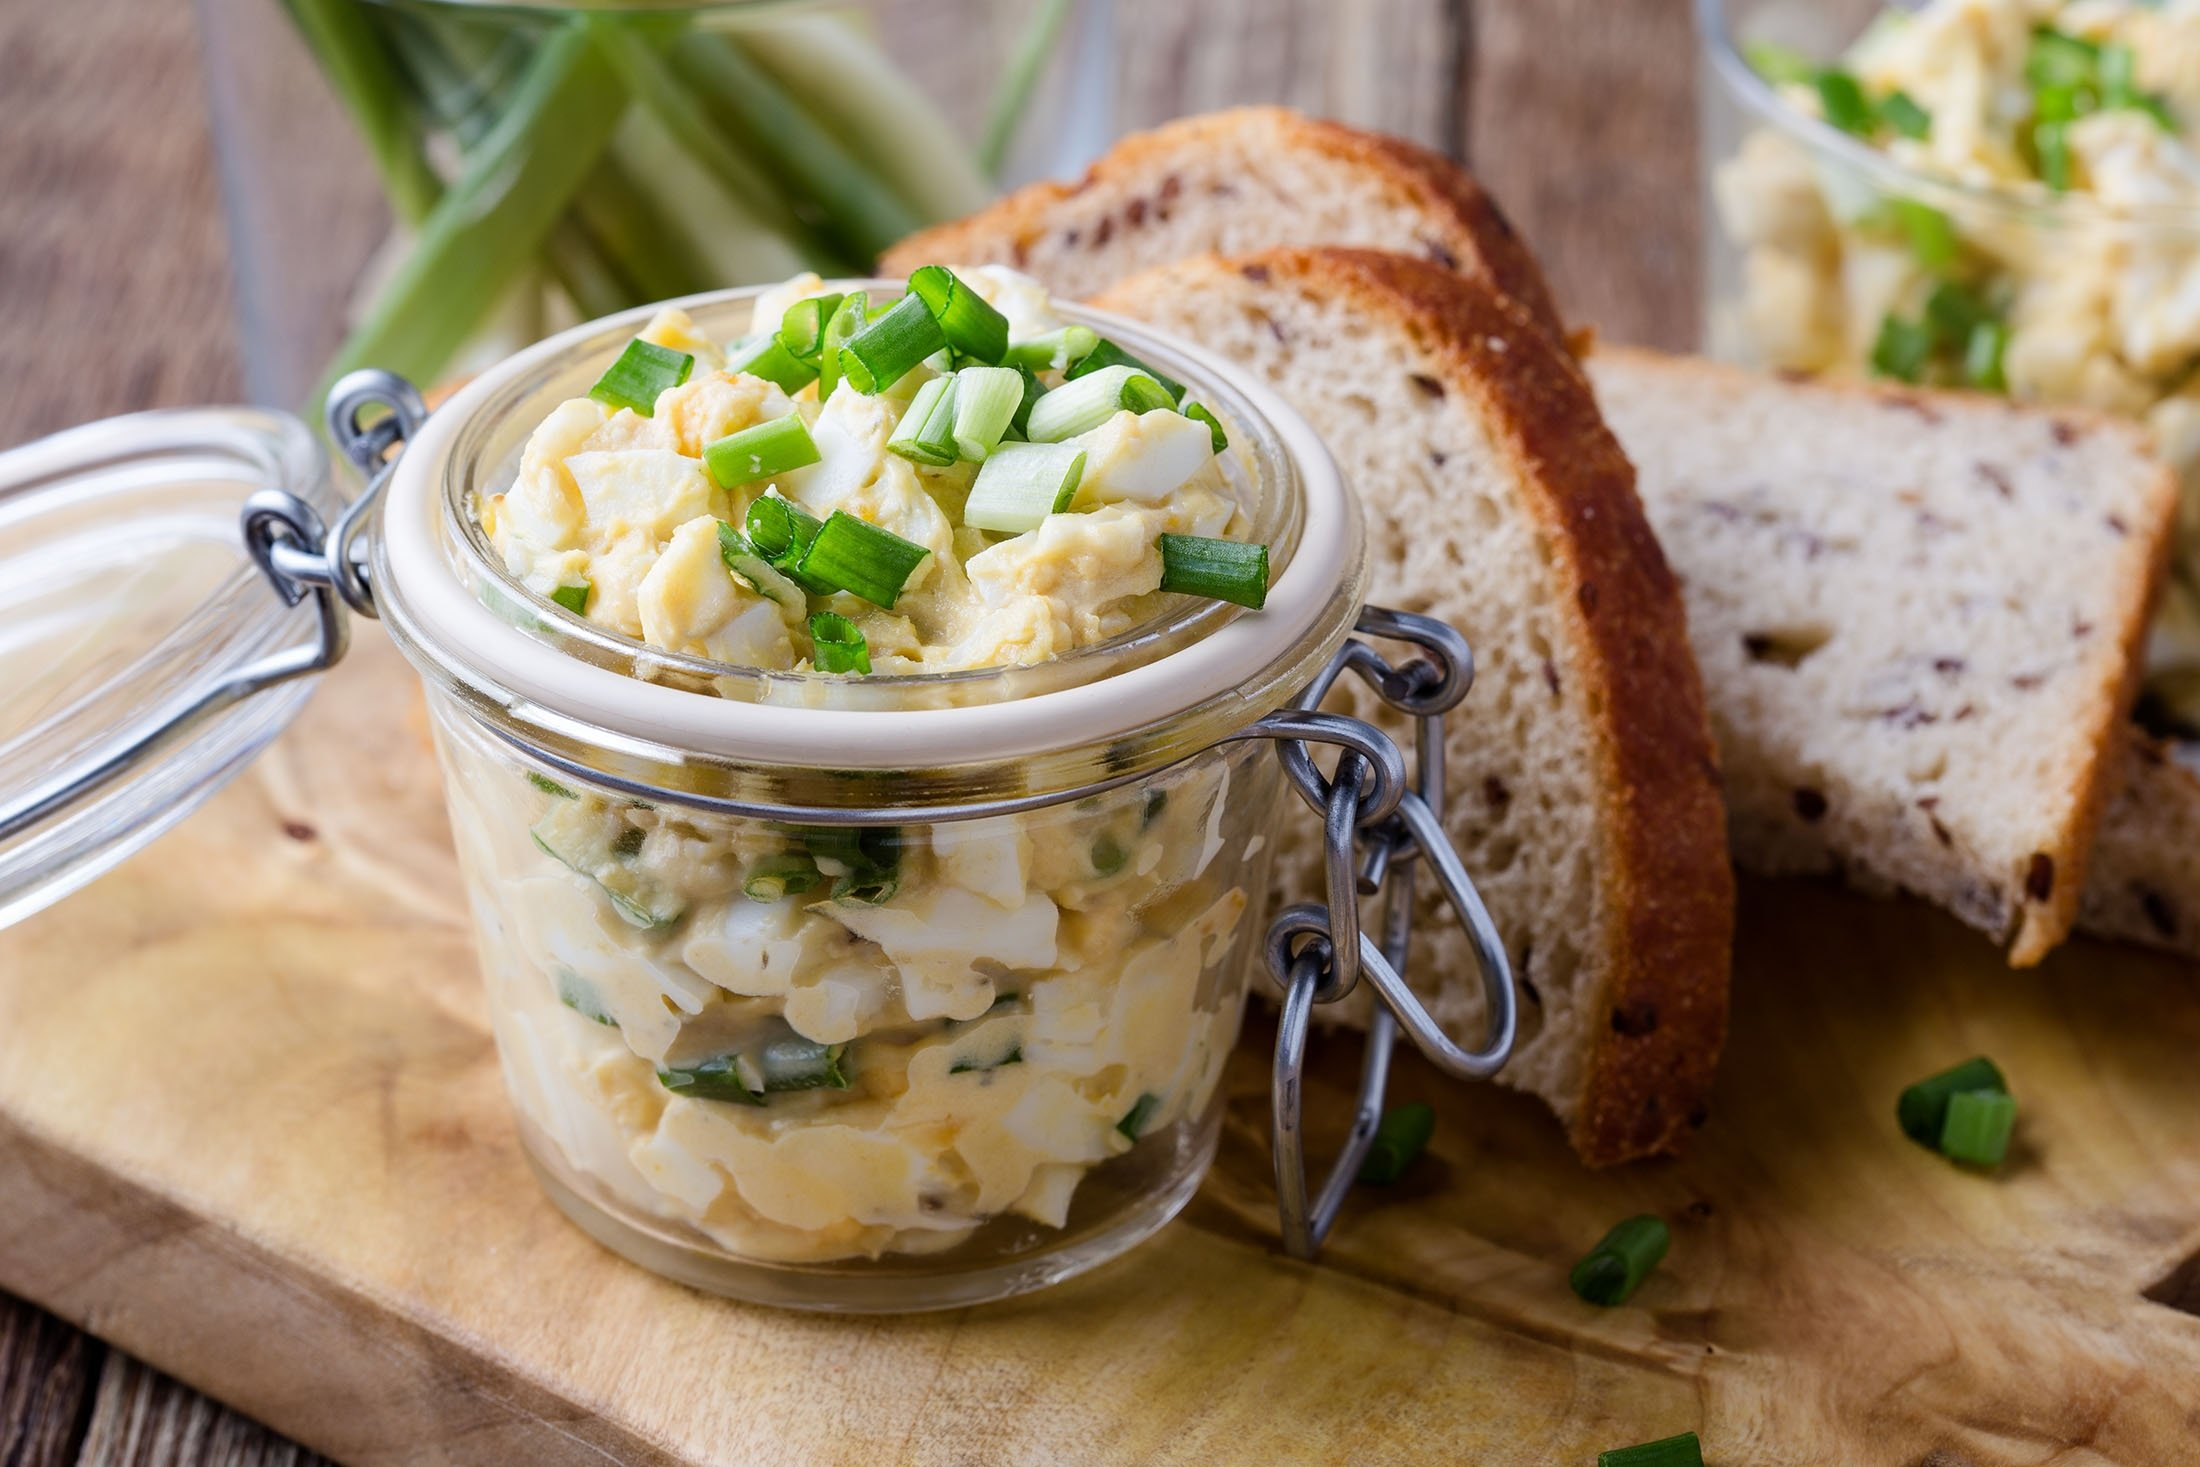 If you add a bit of mayonnaise to your spring onion egg salad, you can make a great sandwich spread. (Shutterstock Photo)